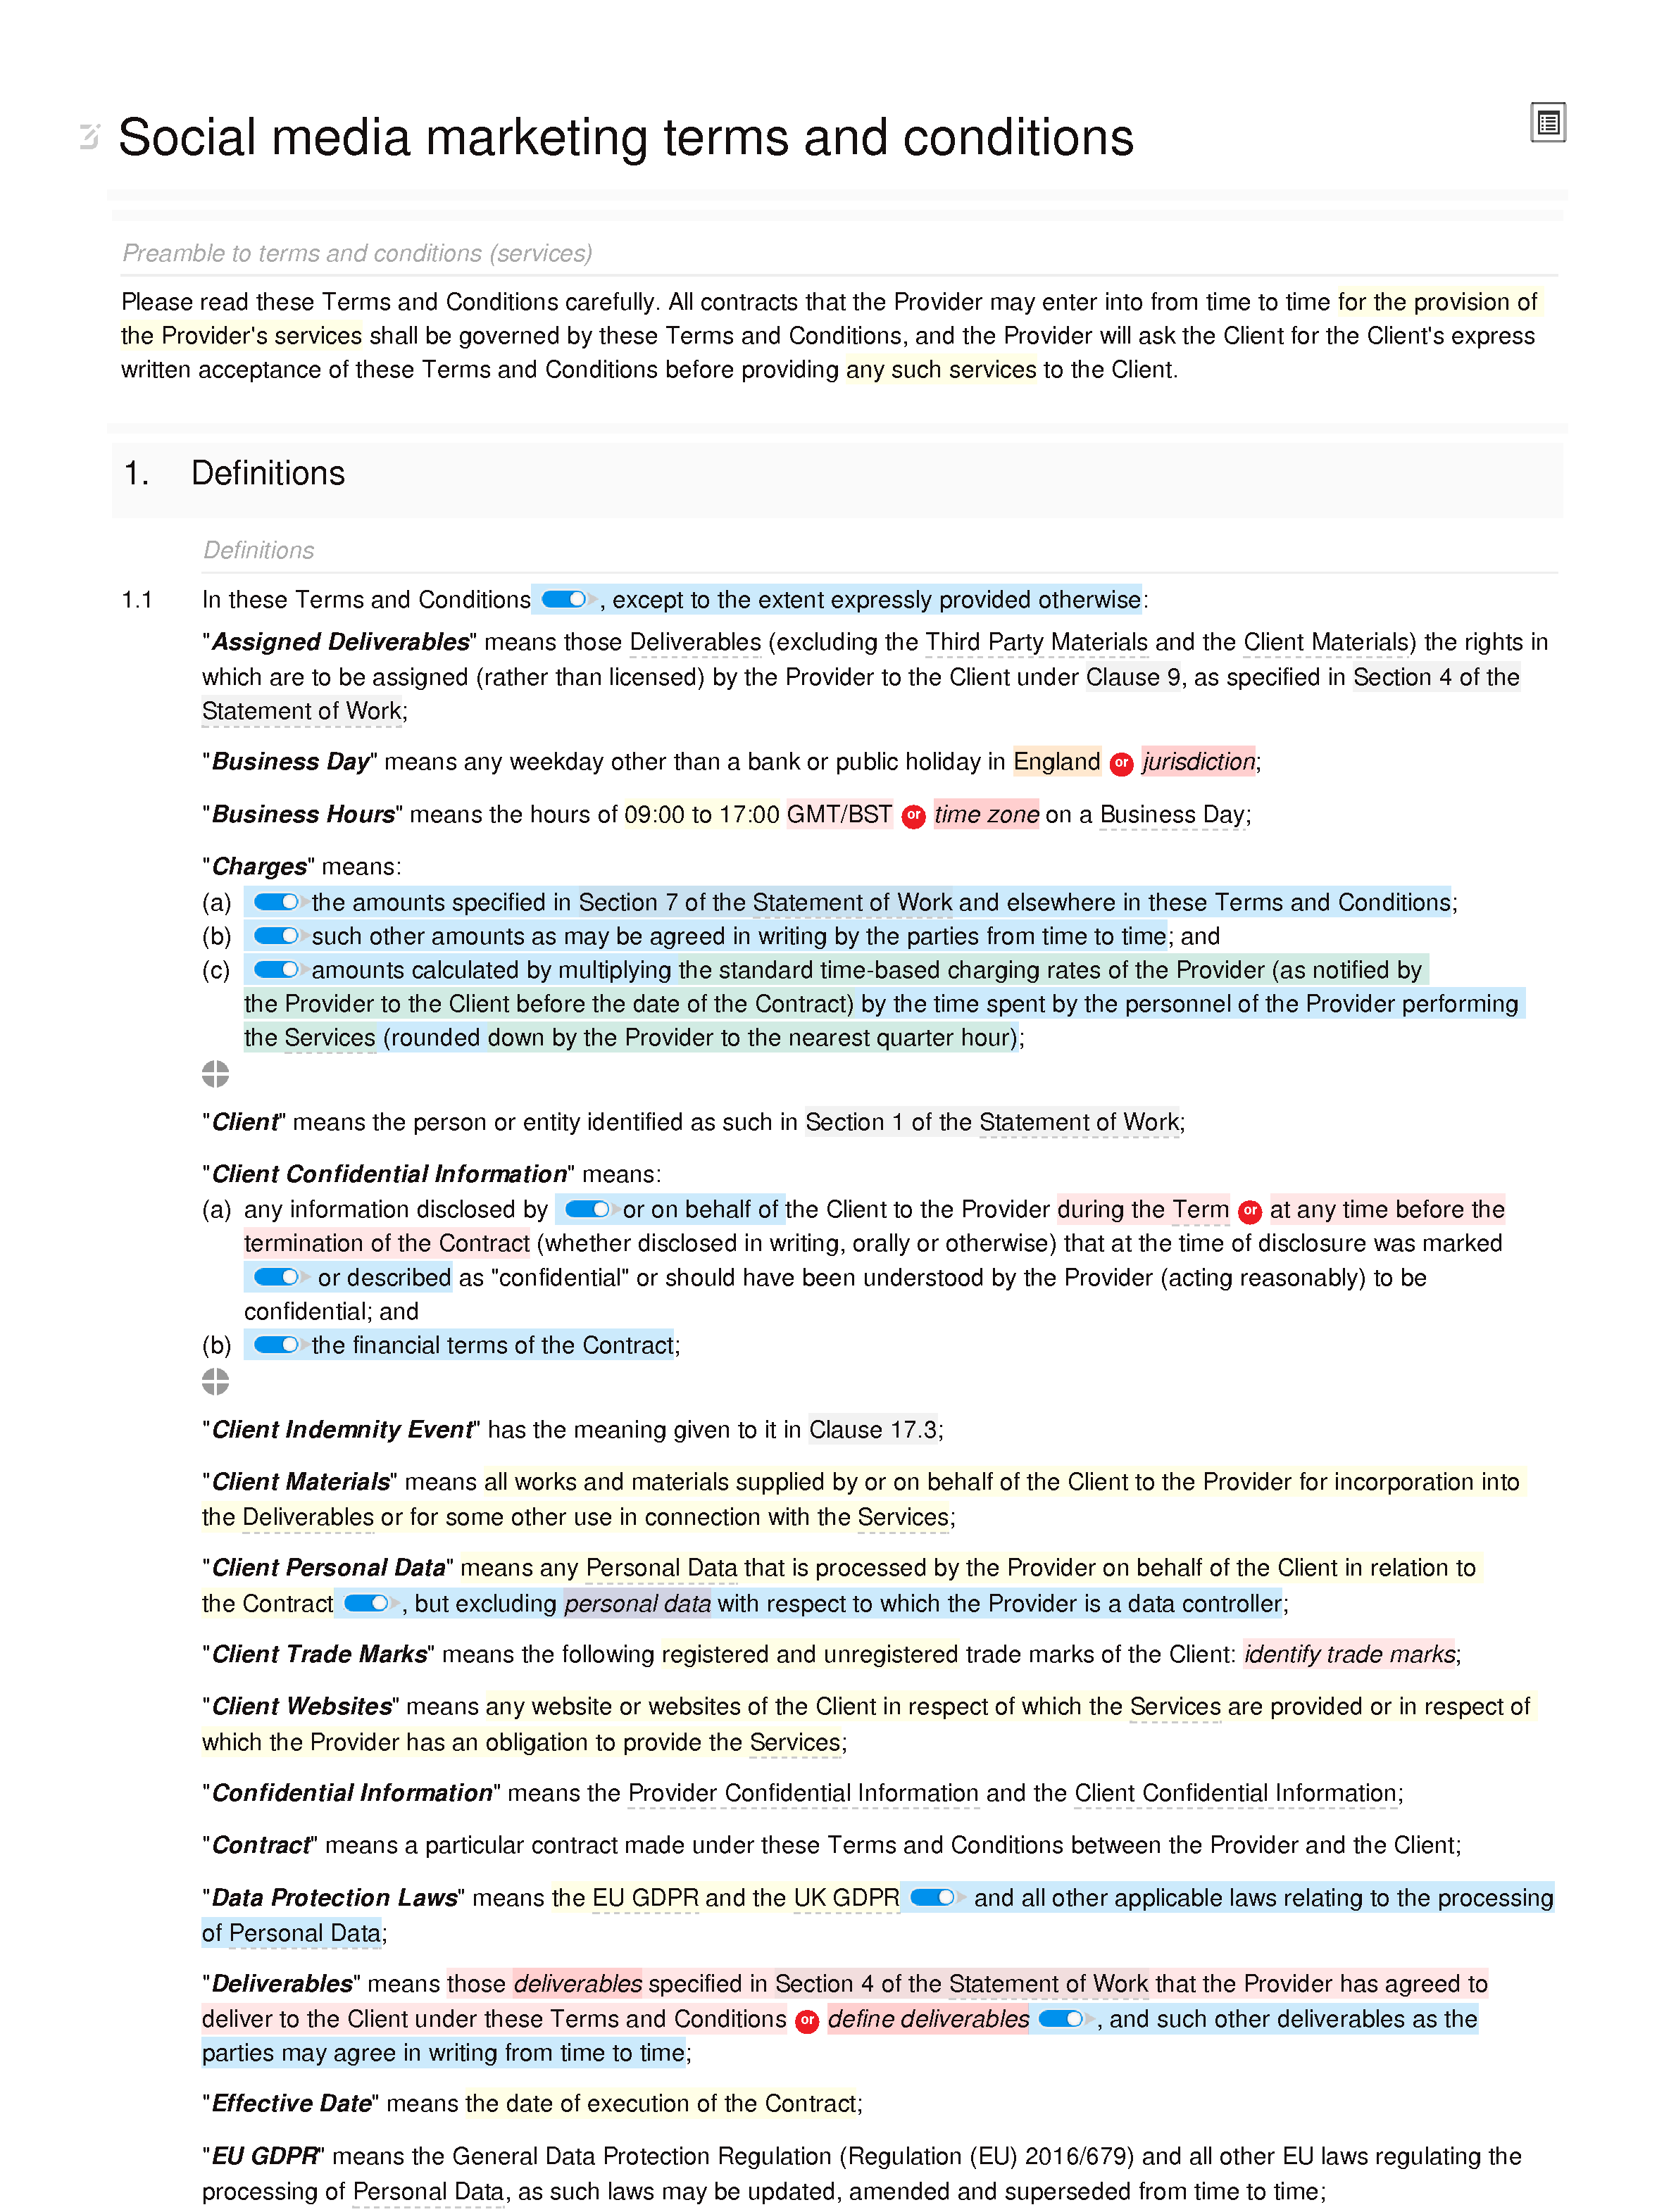 Social media marketing terms and conditions document editor preview